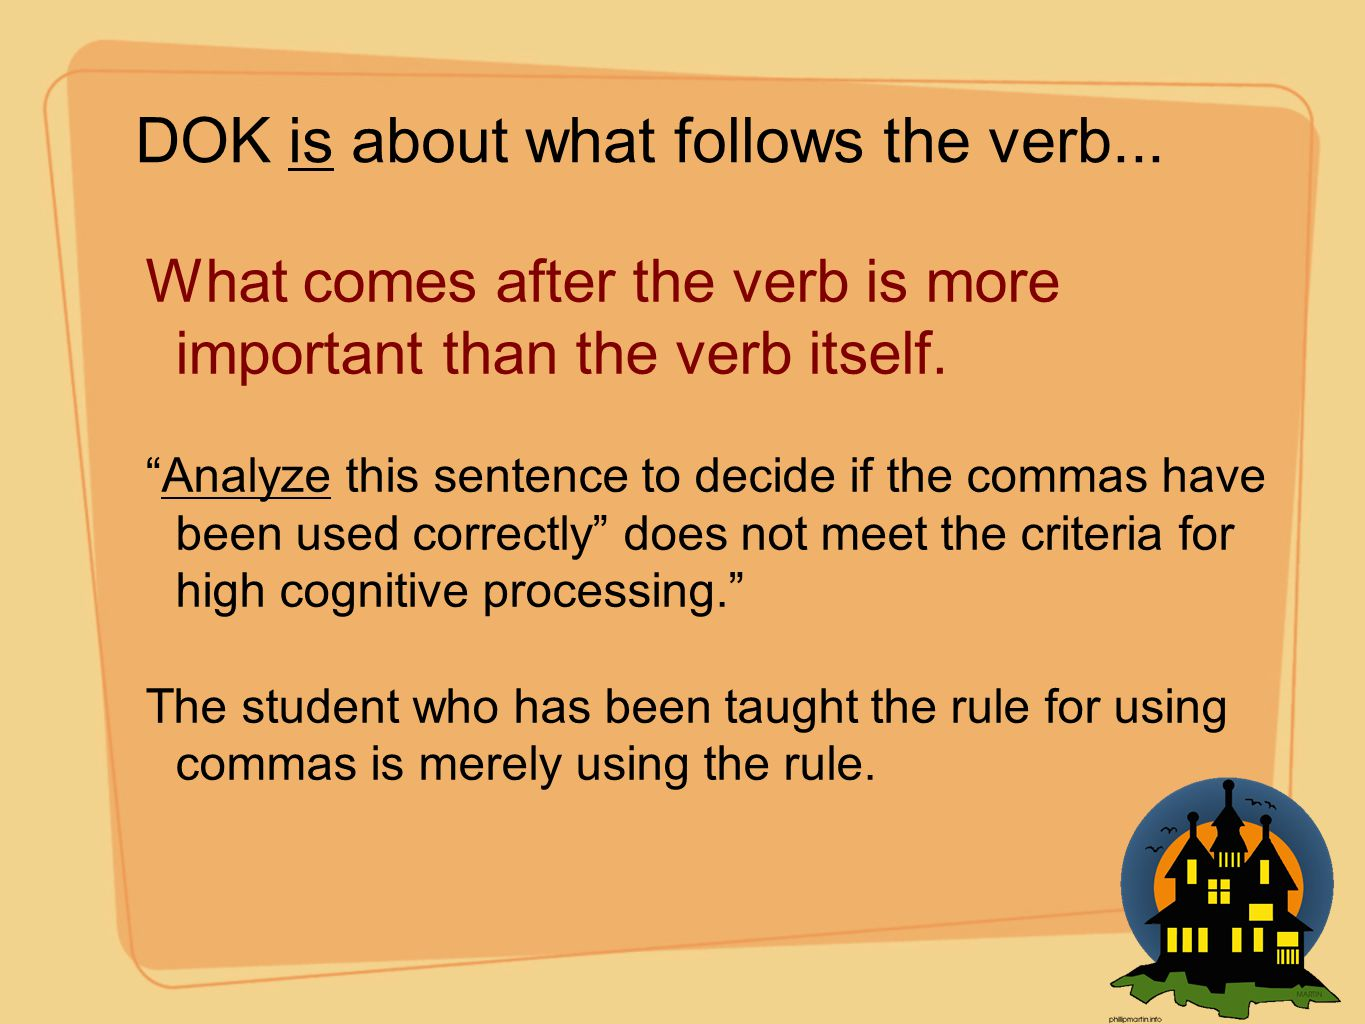 DOK is about what follows the verb...